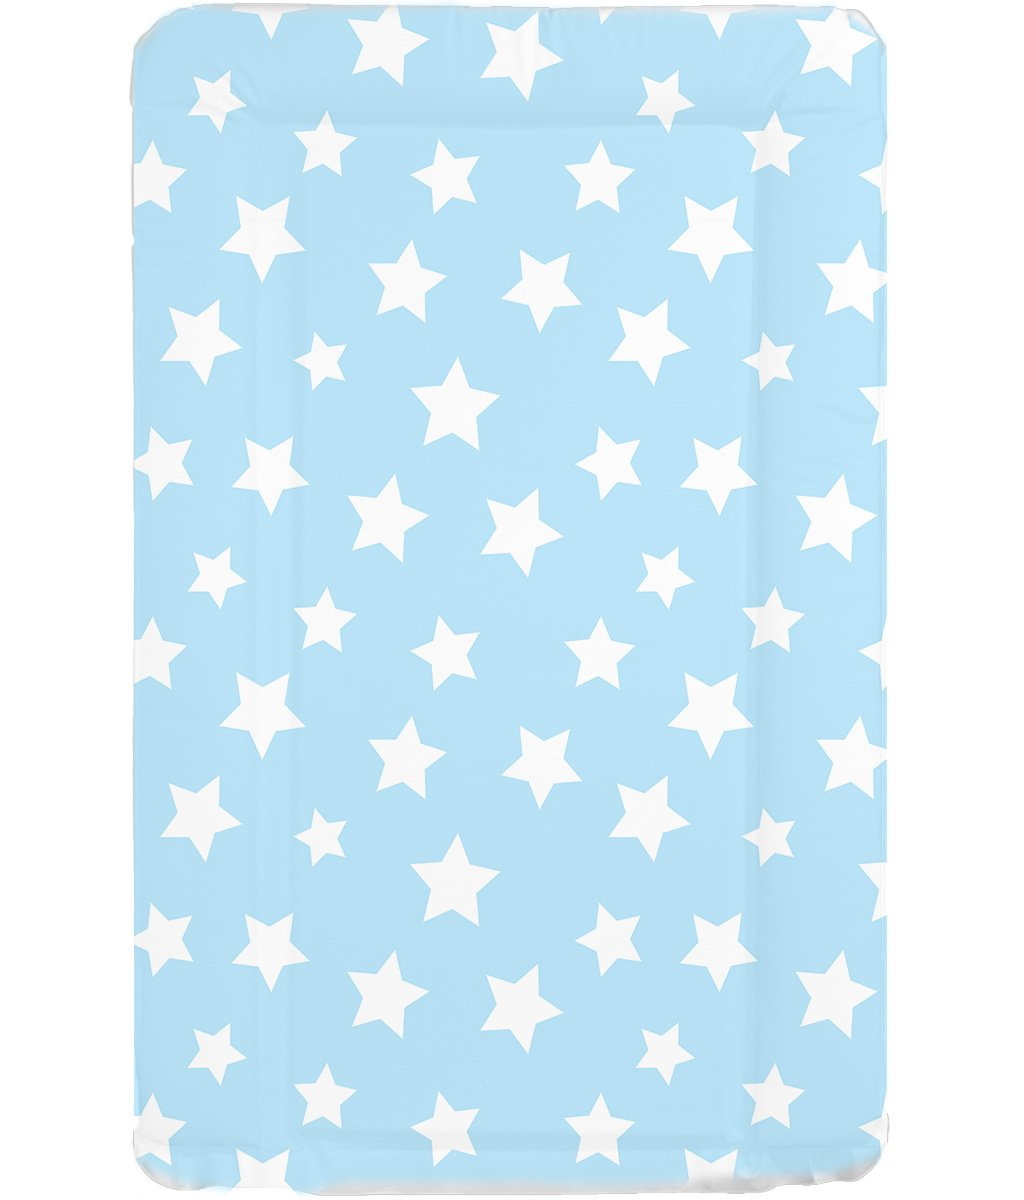 Deluxe Unisex Baby Waterproof Wipeable Changing Mat with Raised Edges - Blue with White Stars babieswithlove